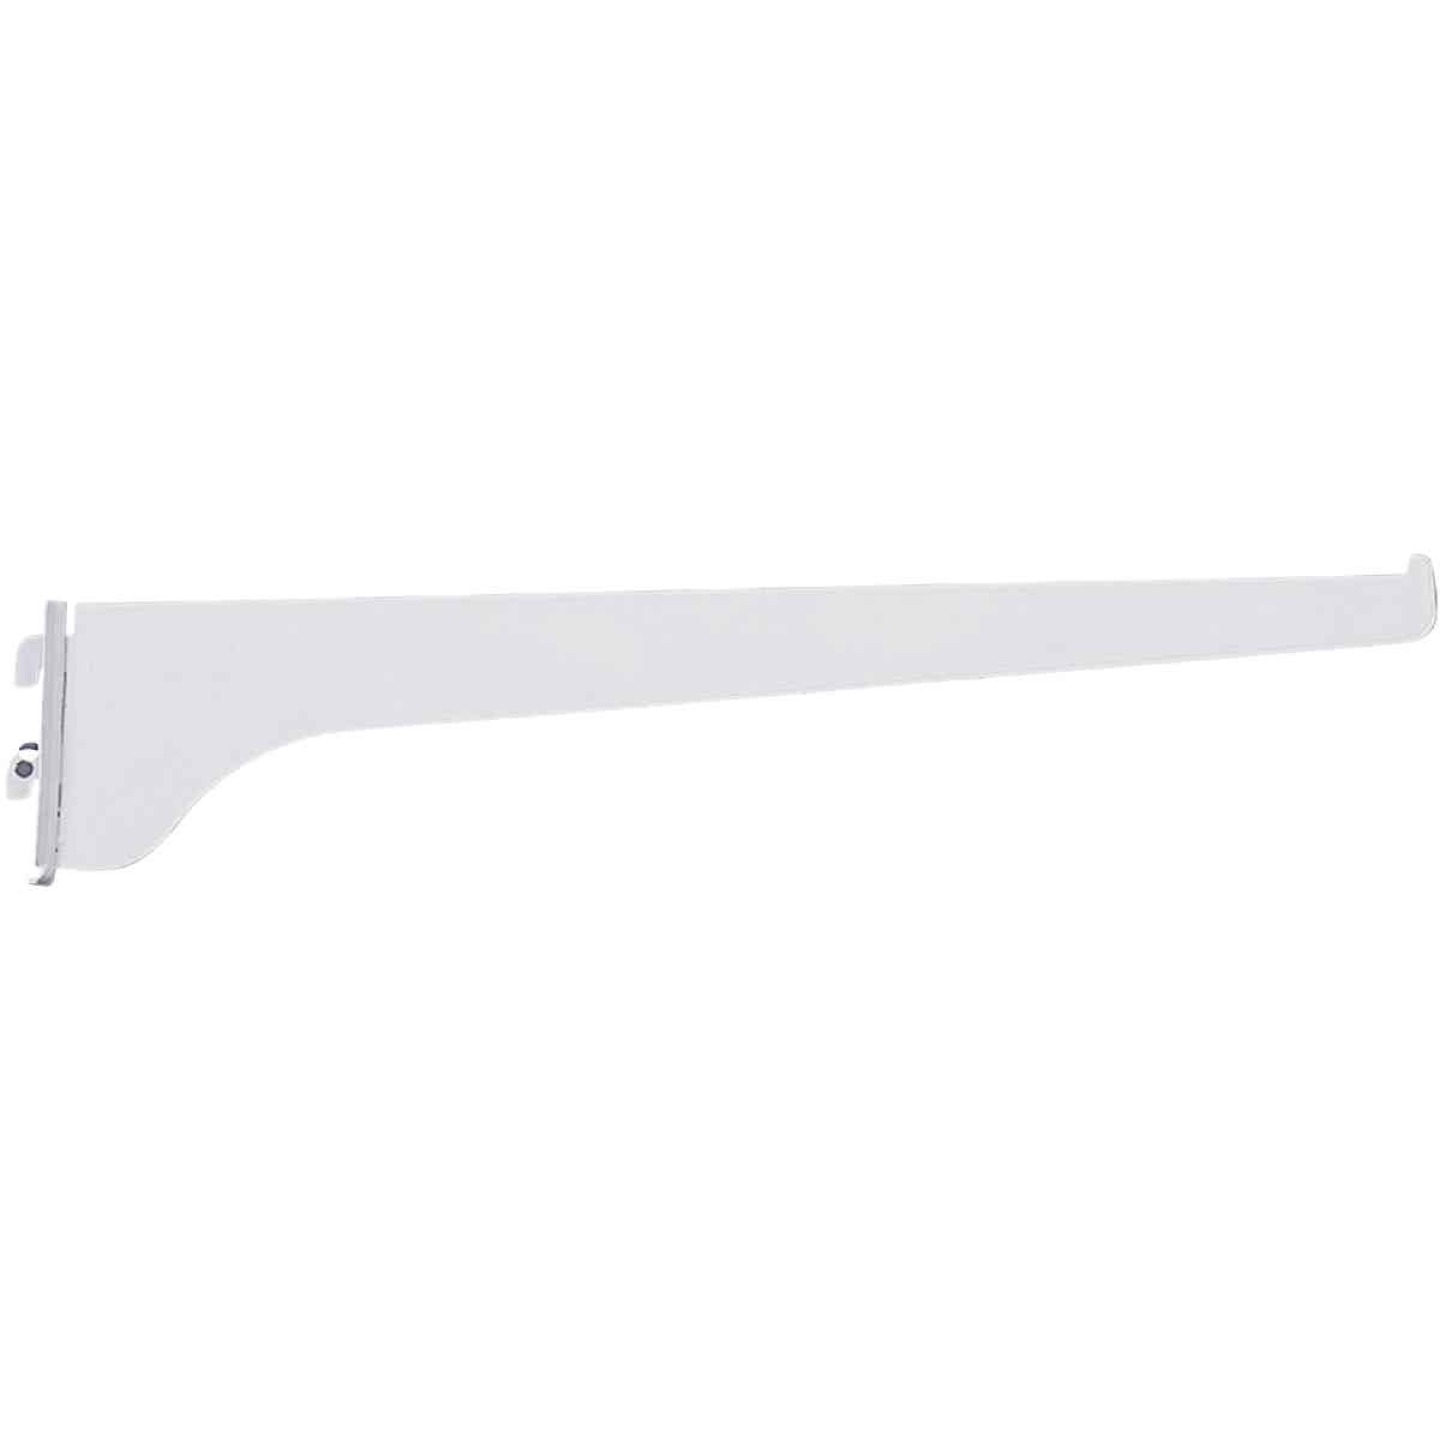 Knape & Vogt 180 Series 8 In. Titanium Steel Regular-Duty Single-Slot Shelf Bracket Image 1